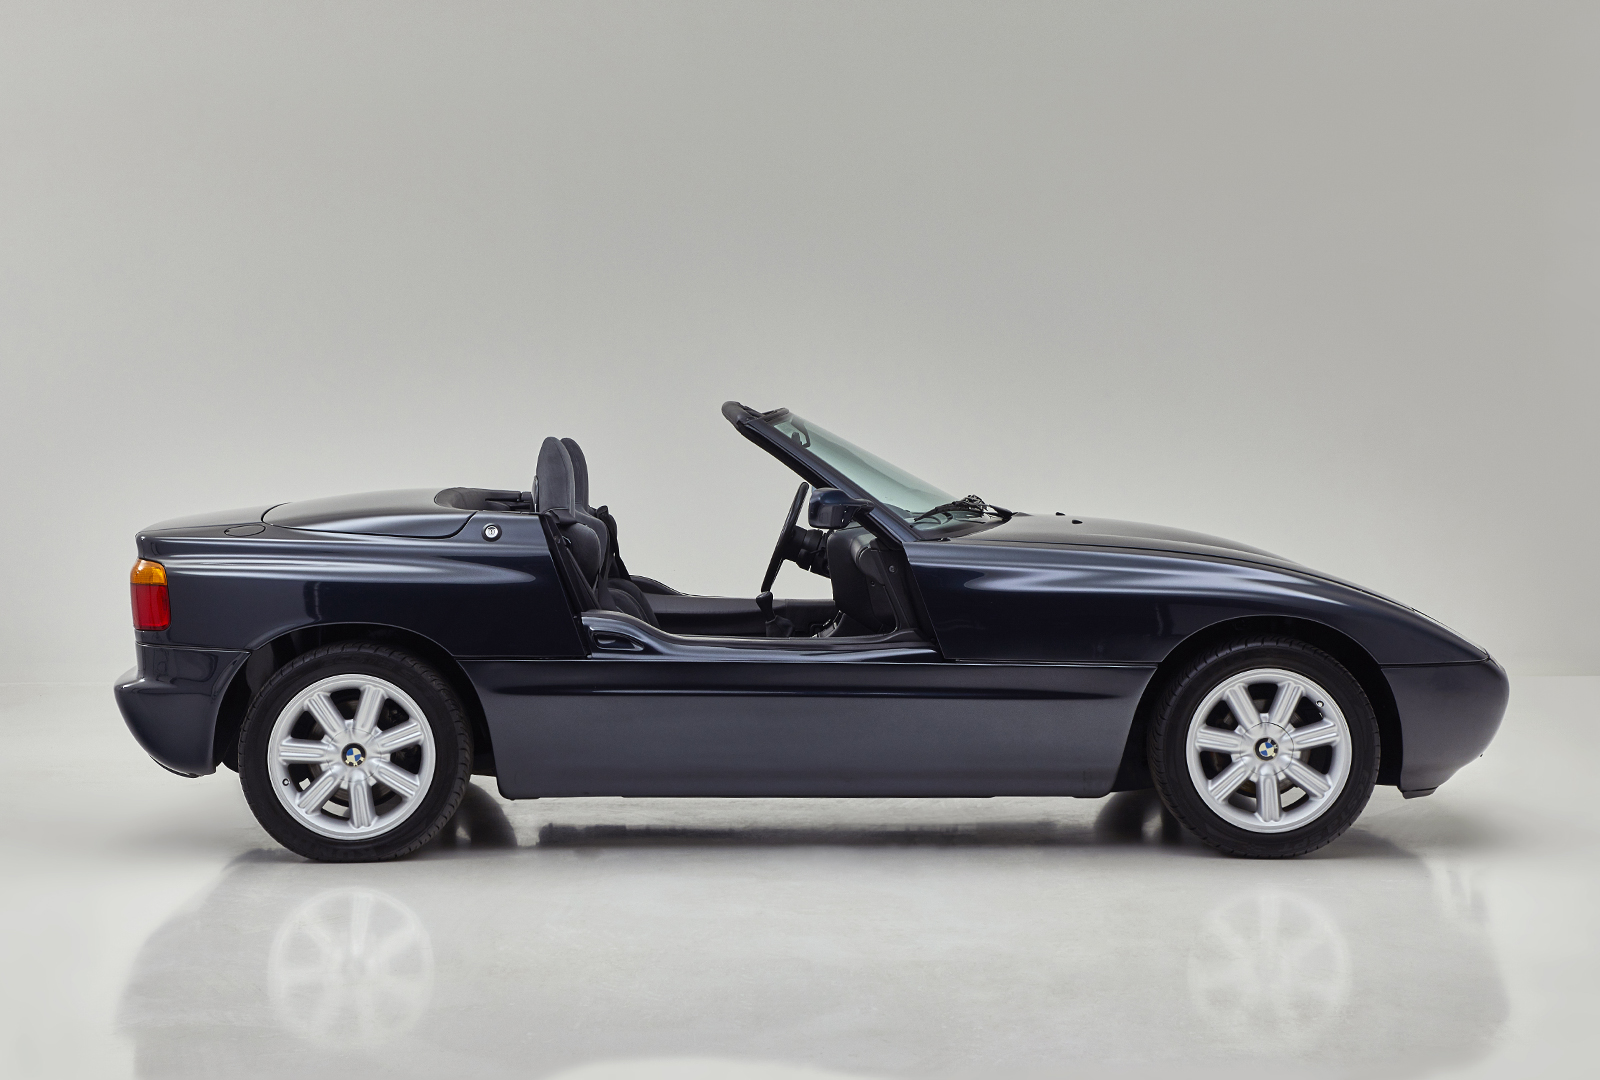 bmw z1 roadster 2 personers sportsvogn 2 5 l 6 cylindre. Black Bedroom Furniture Sets. Home Design Ideas